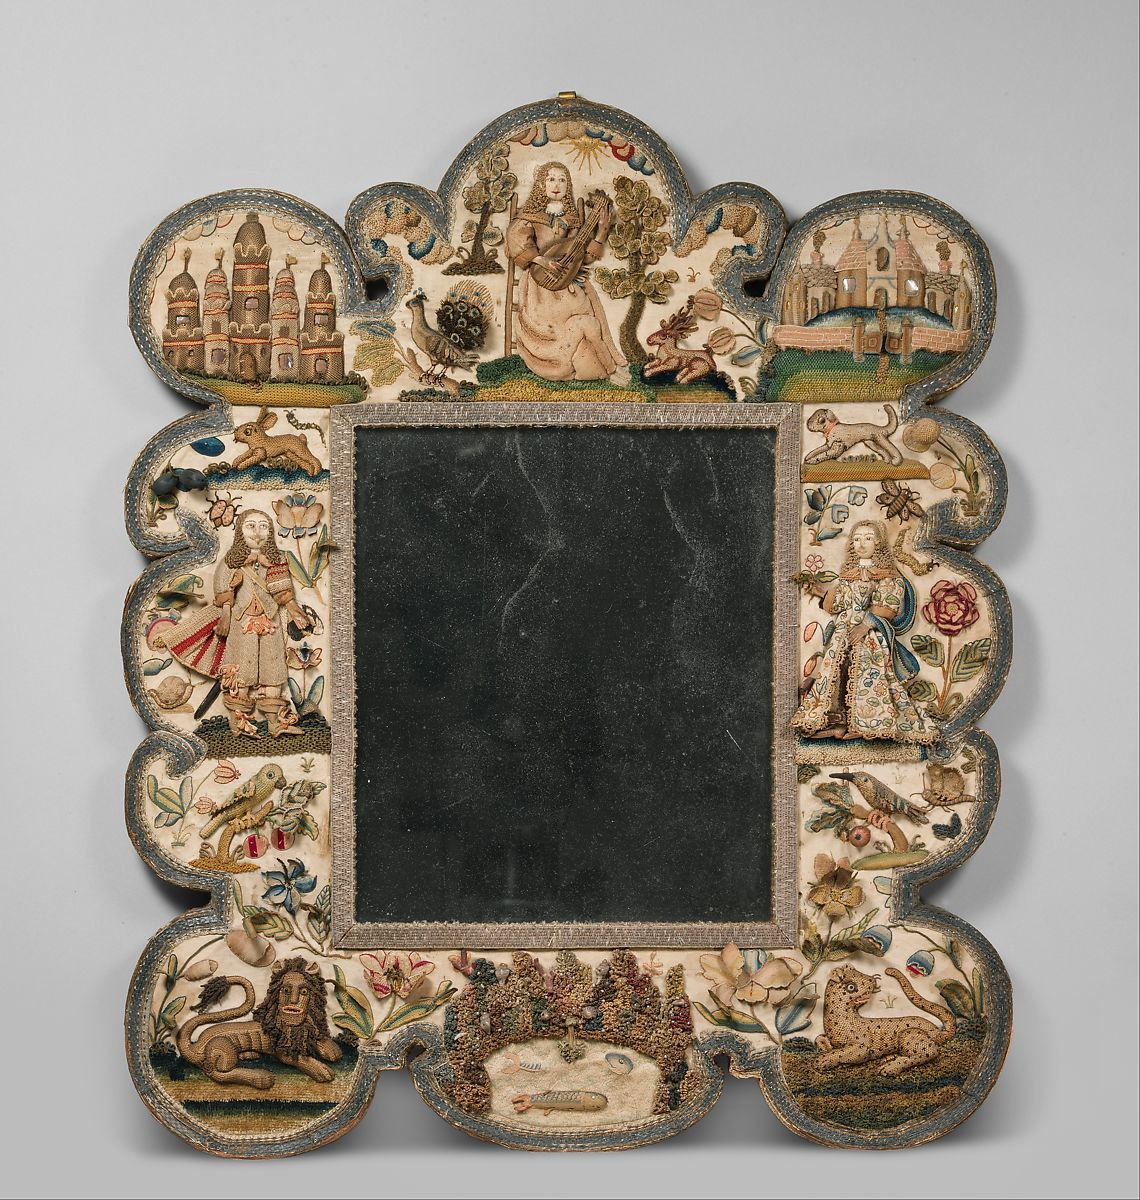 Mirror frame, Satin worked with silk, chenille threads, purl, shells, wood, beads, mica, bird feathers, bone or coral; detached buttonhole variations, long-and-short, satin, couching, and knot stitches; wood frame, mirror glass, plush, British